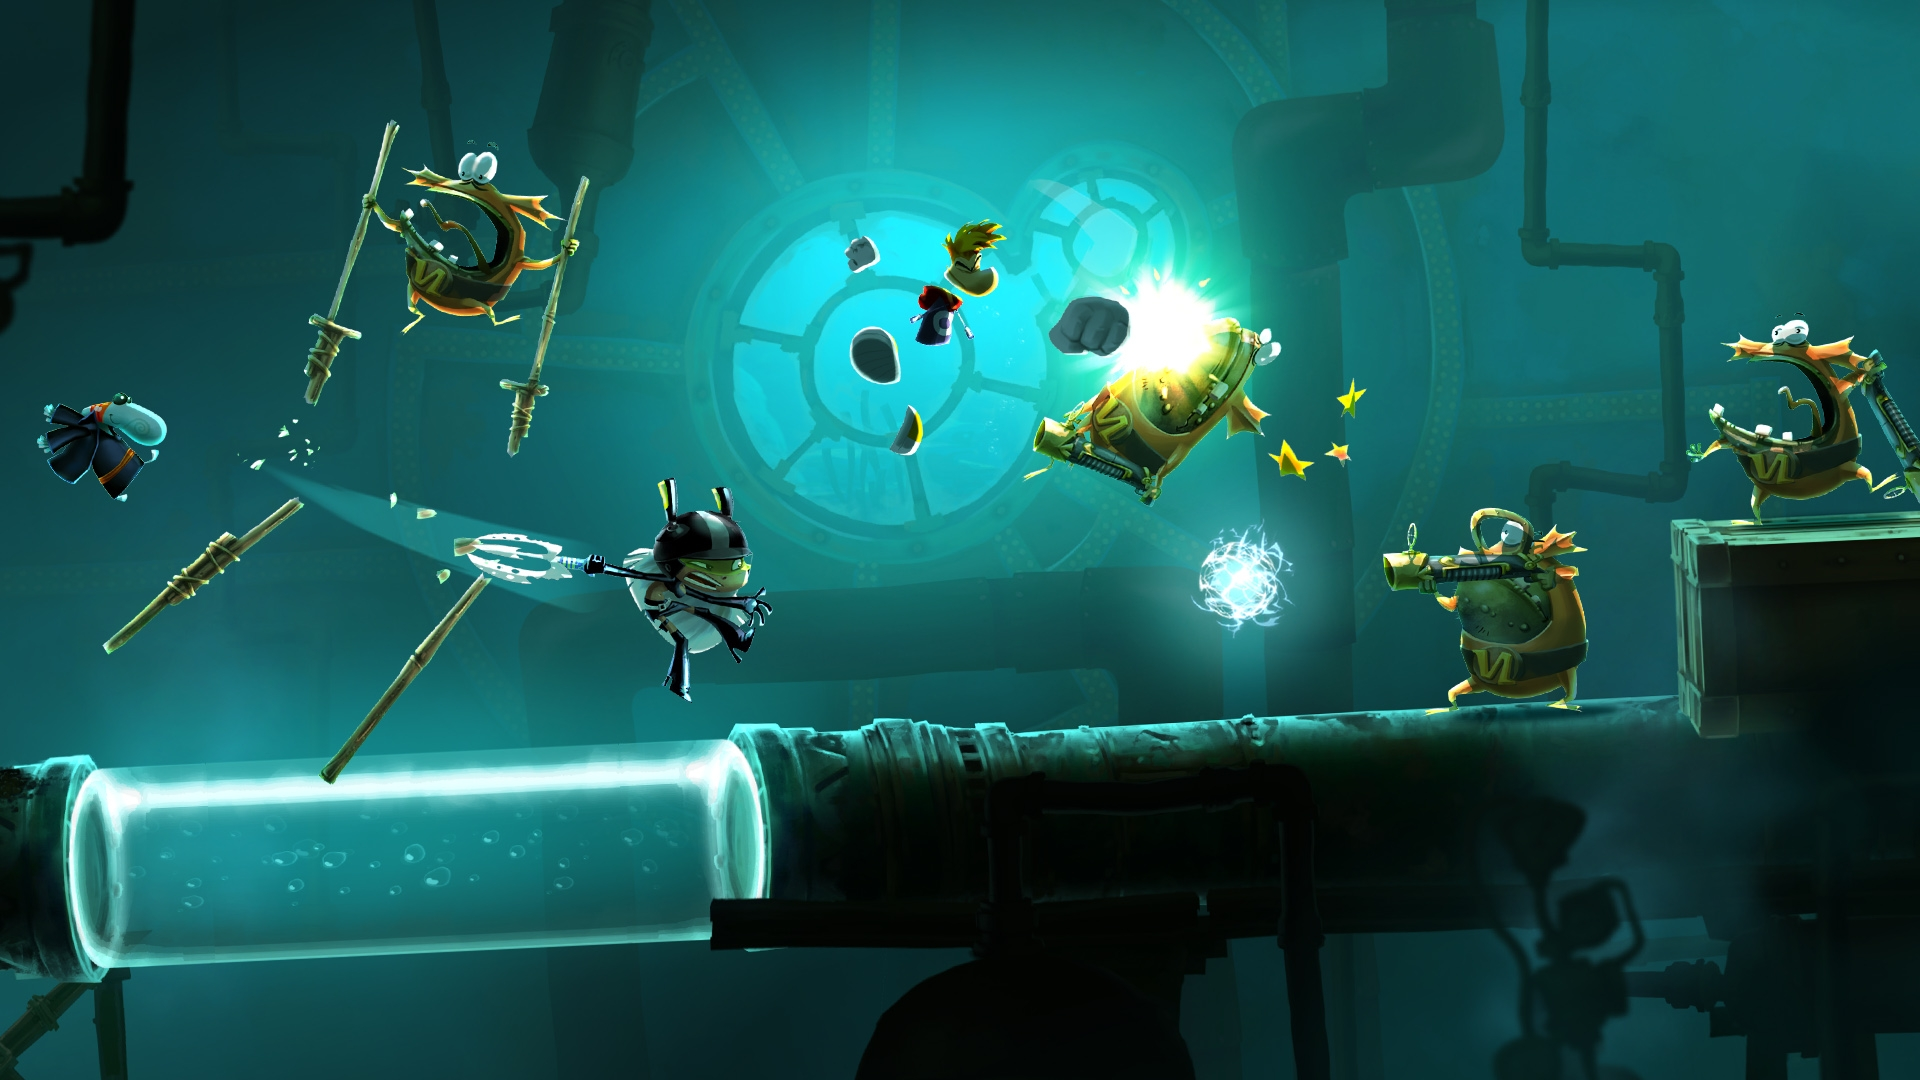 rayman-legends-gamescom-2013-05